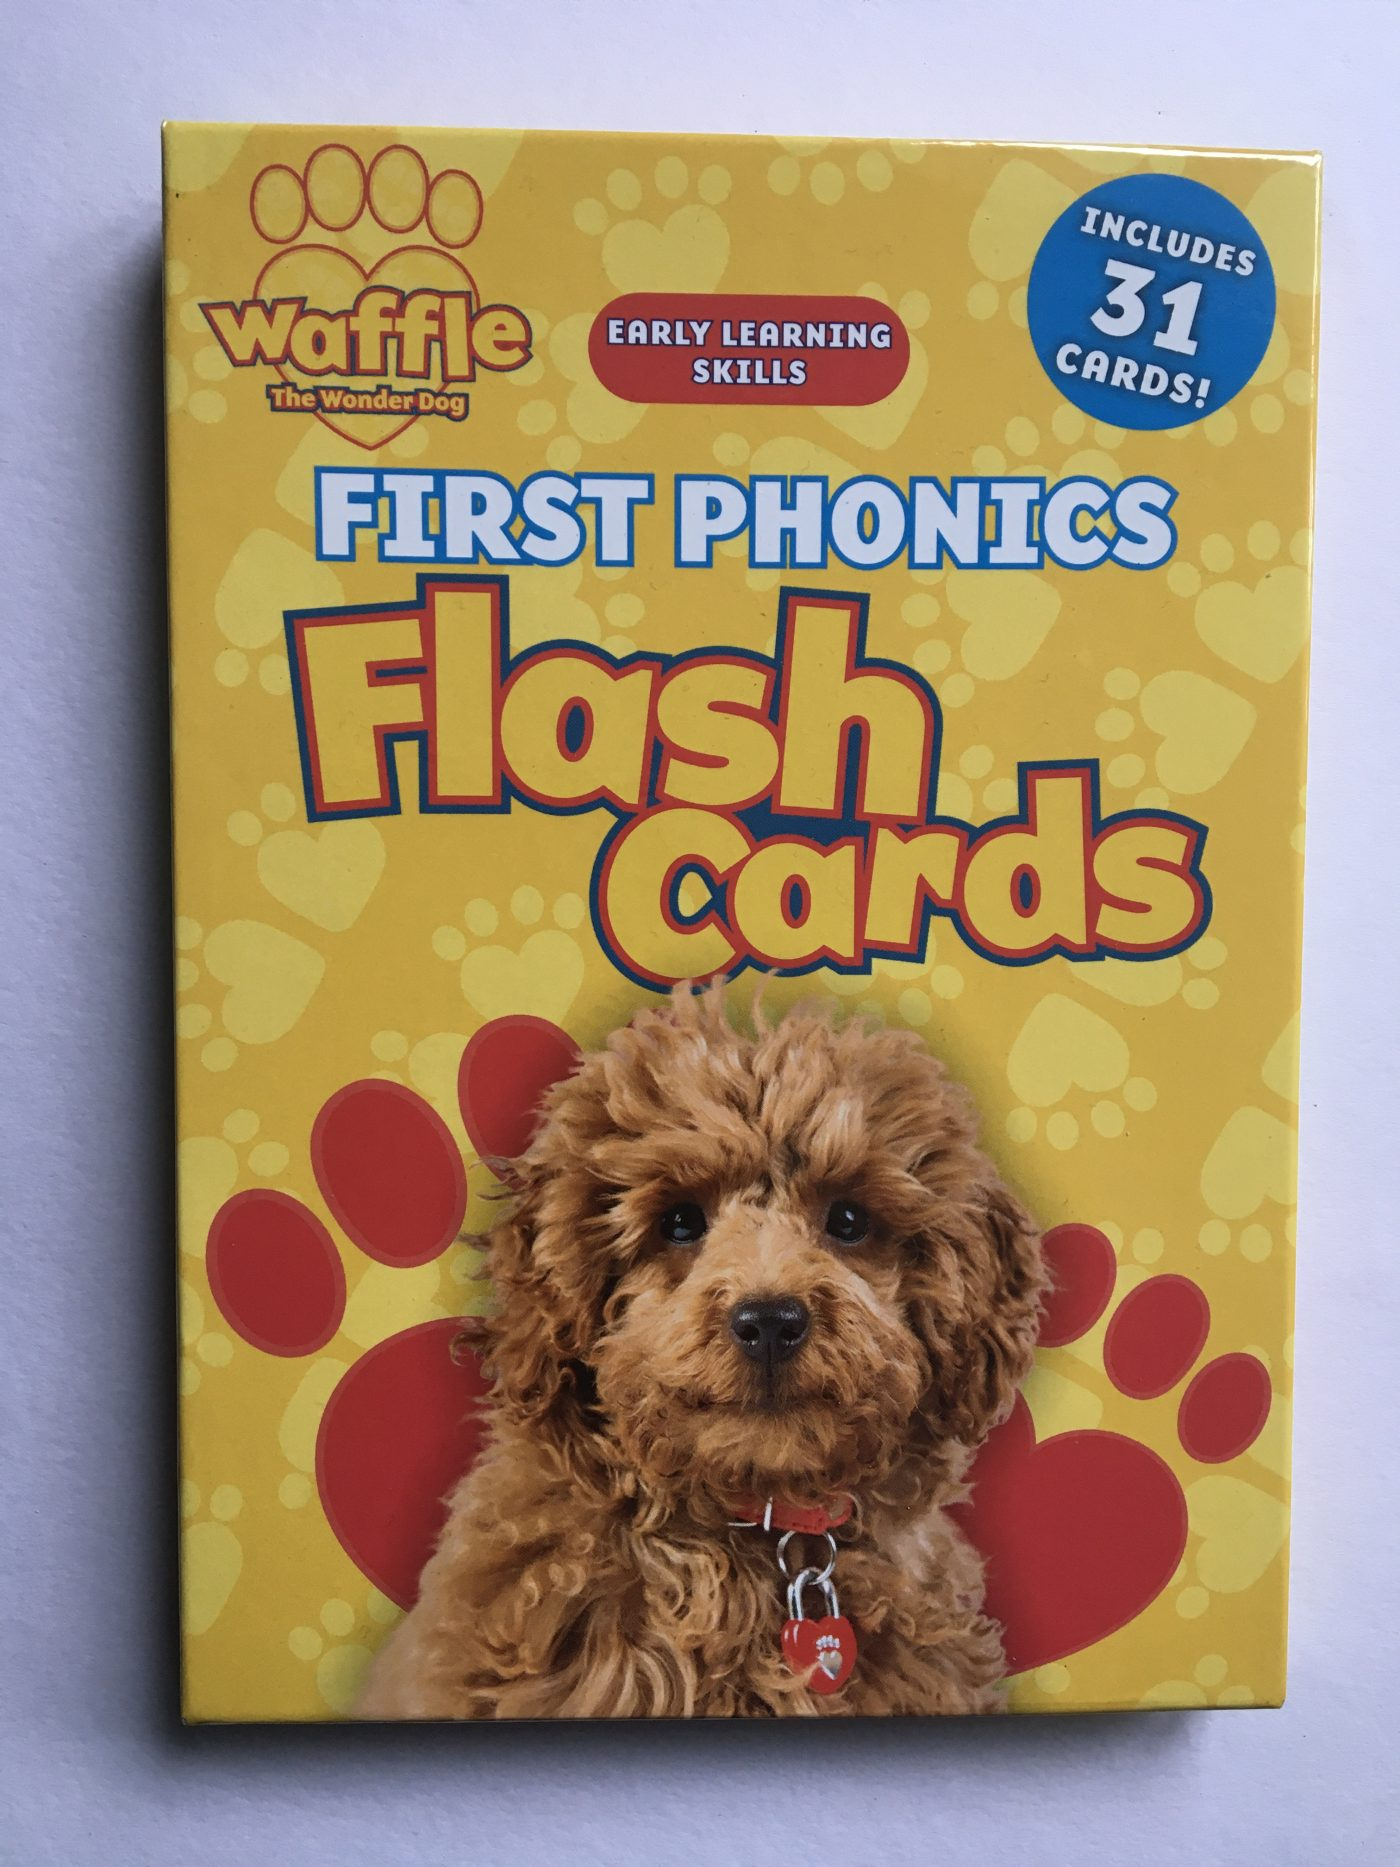 Waffle the Wonder Dog first phonics flash cards